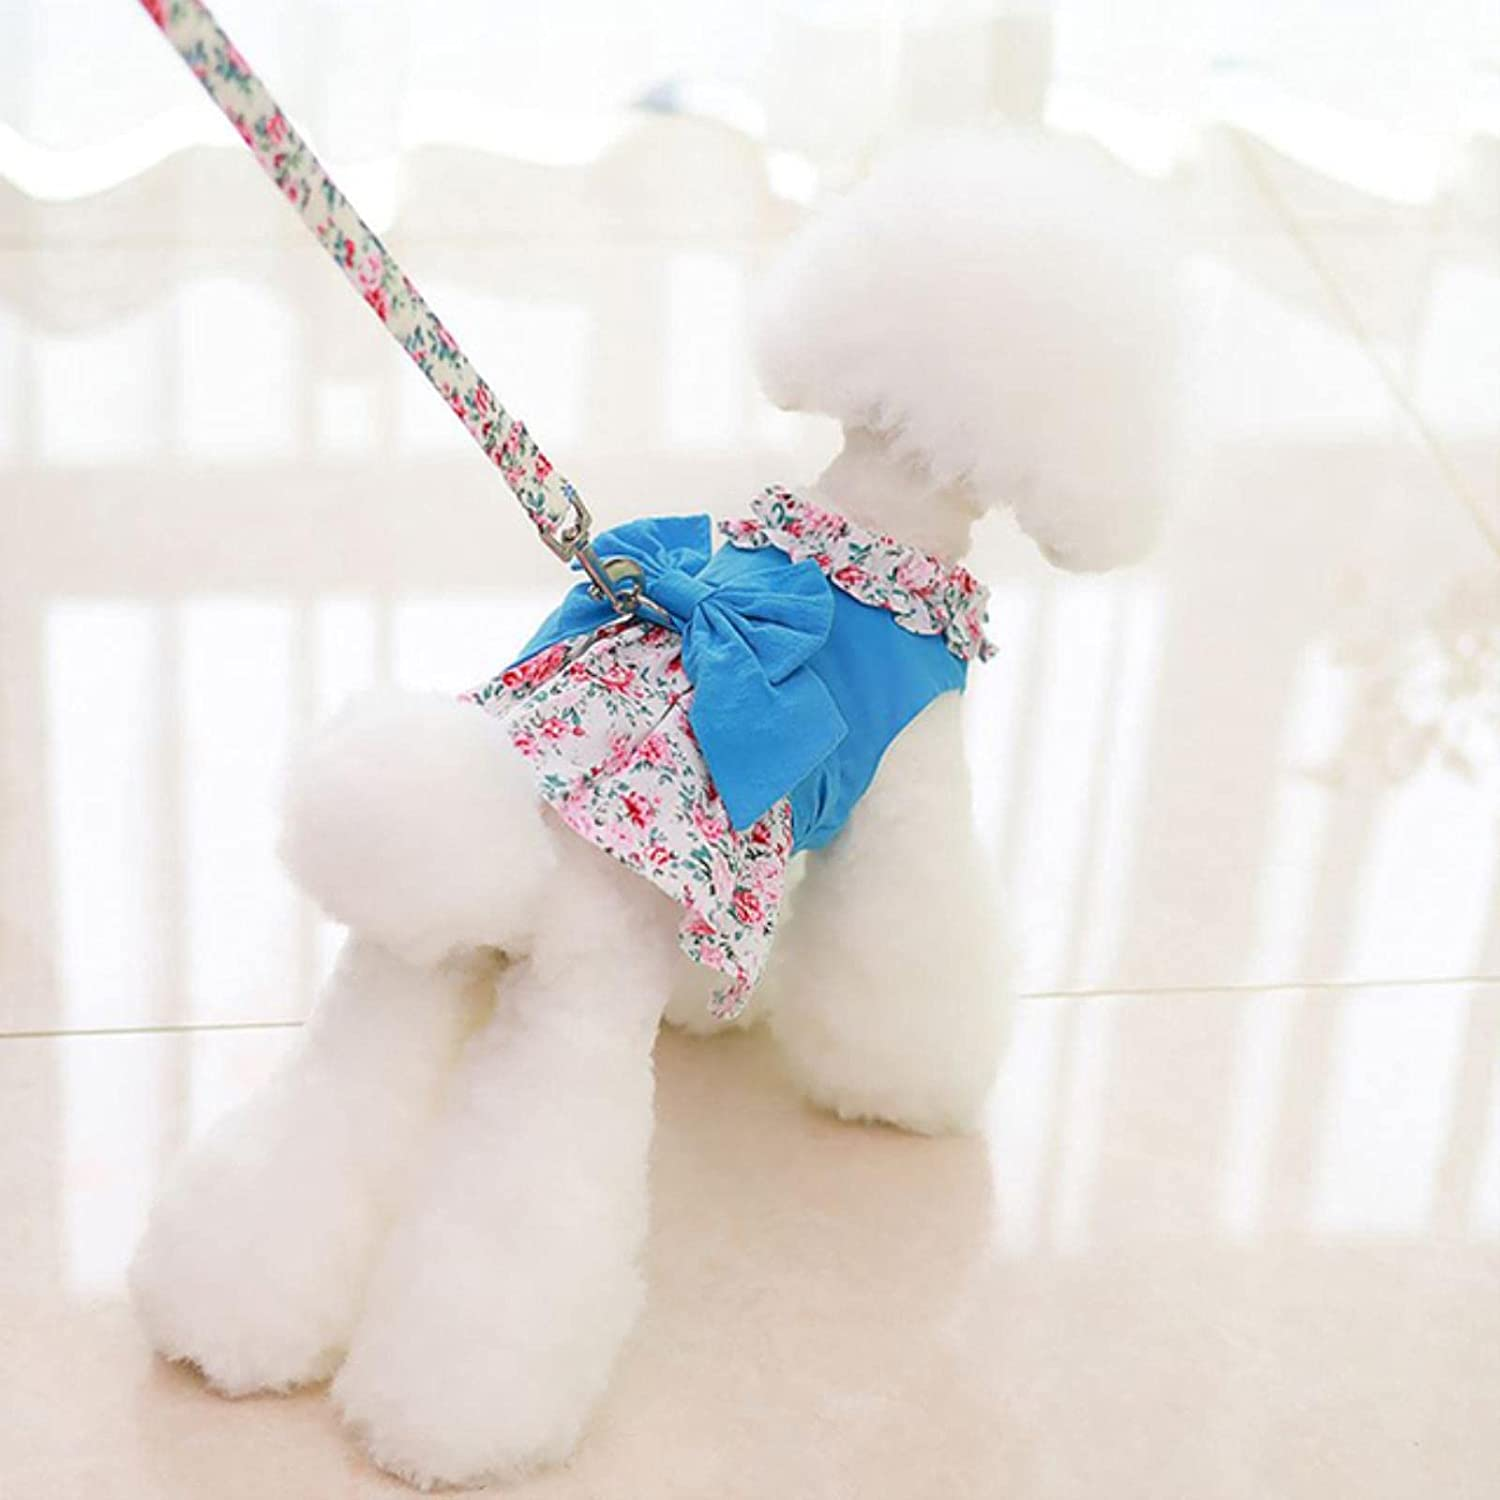 Heigou Sales results No. 1 New Dog Cat Dress with FloralBow Leas Animer and price revision Shirt Matching